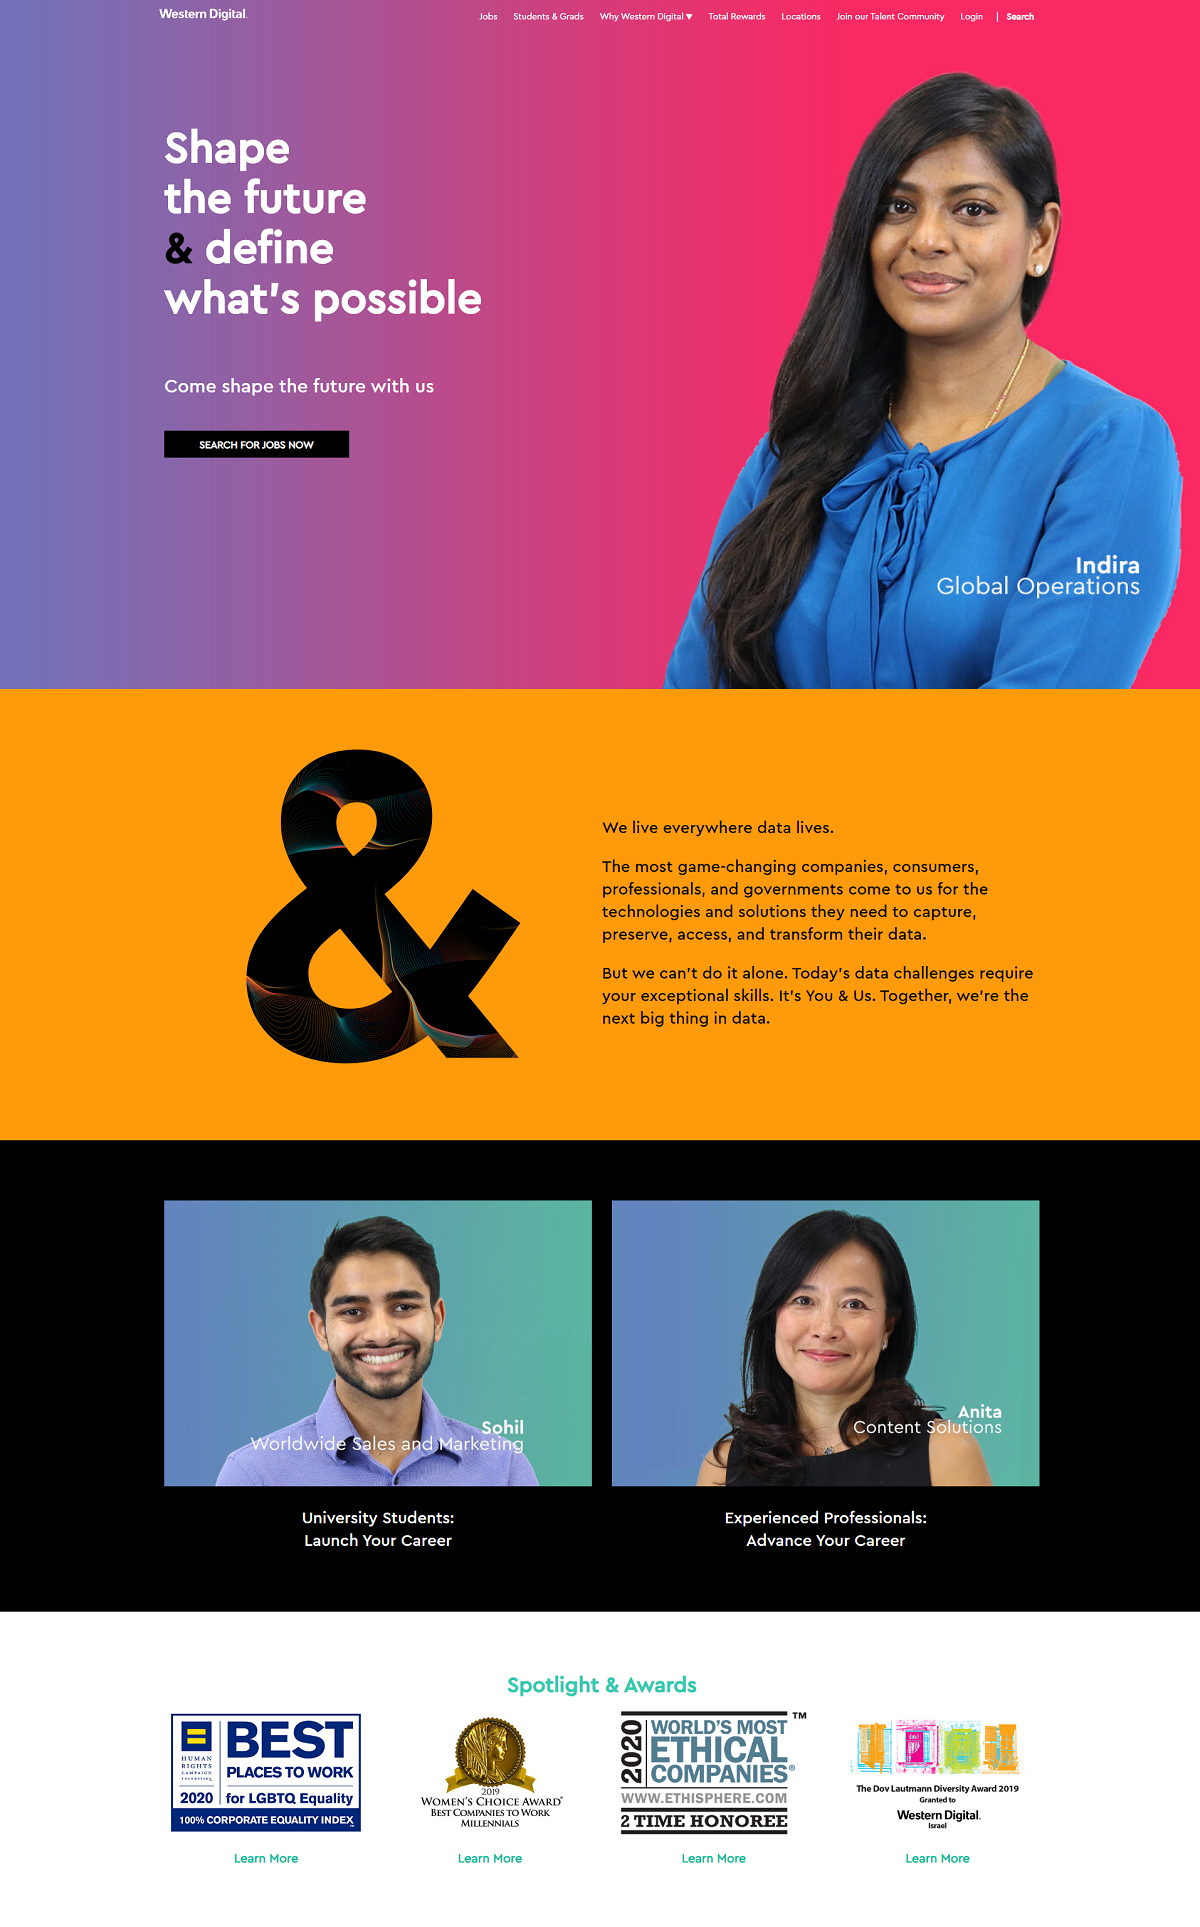 Western Digital company career page